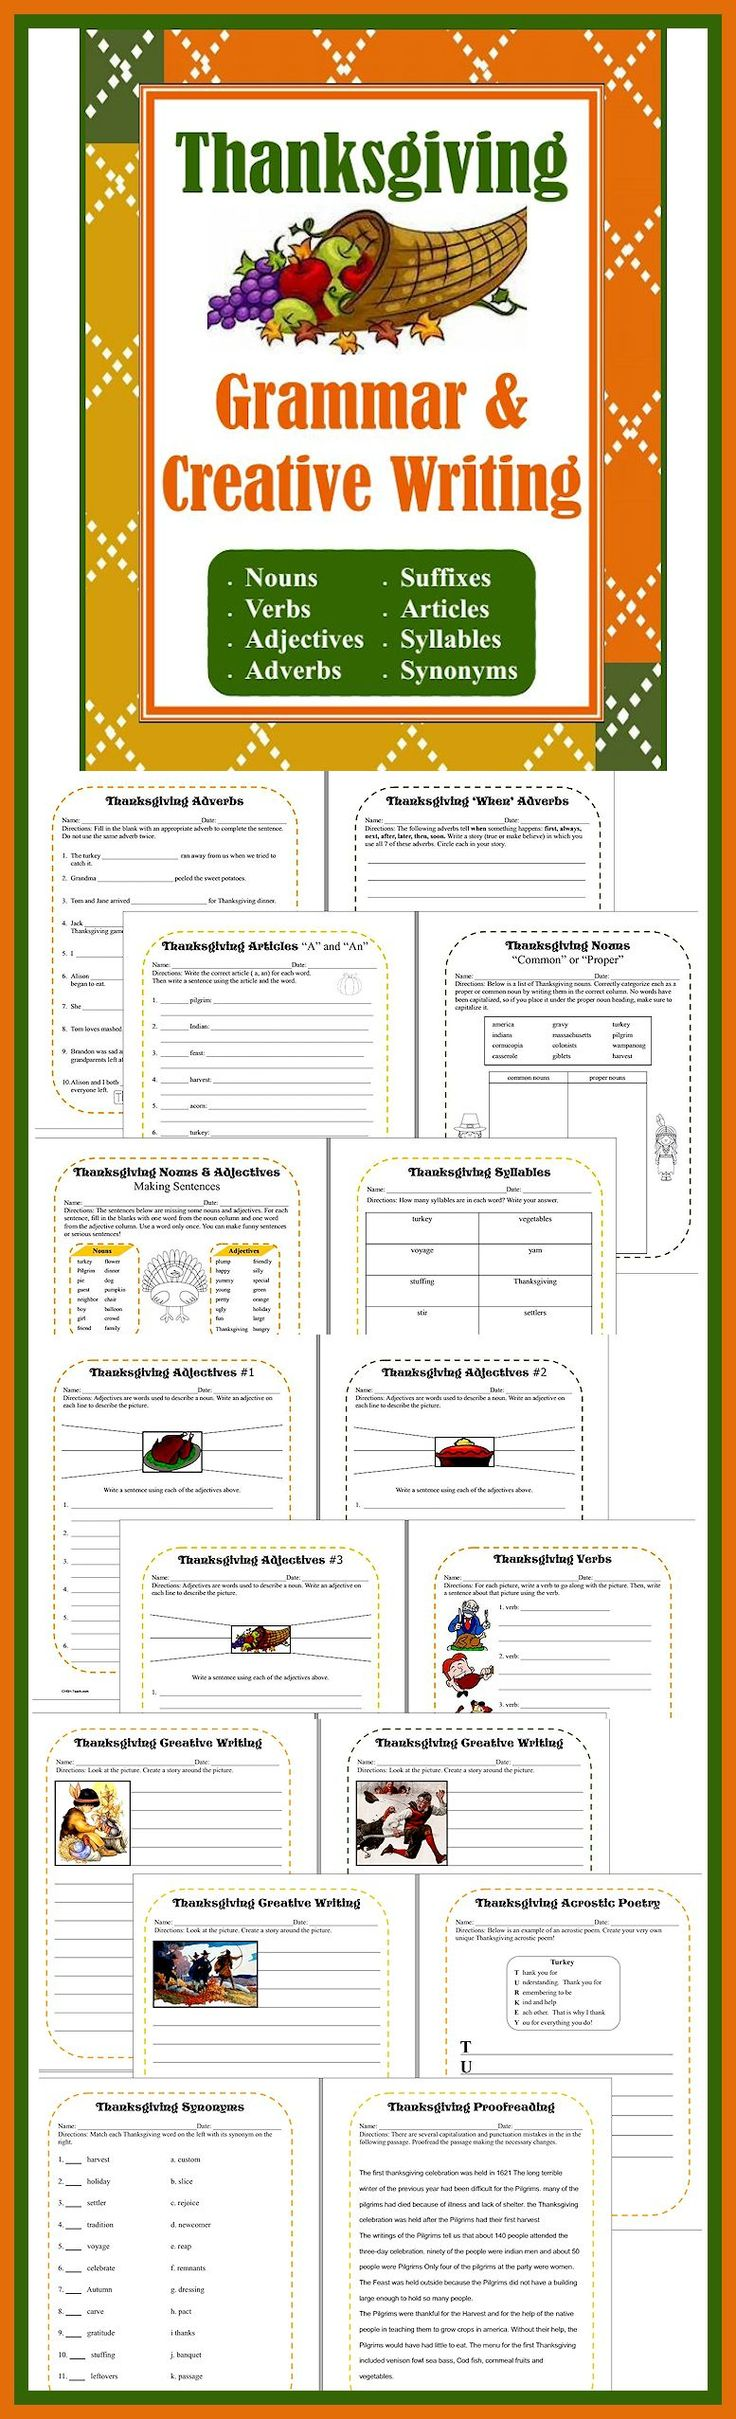 """Thanksgiving Grammar & Creative Writing Packet for 4th - 8th grades. Includes work with adjectives, adverbs, verbs, suffixes, articles """"a"""" and """"an"""", nouns - both common and proper, syllables, synonyms, proofreading and also provides picture writing prompts for creative story writing as well as acrostic and limerick poetry! http://www.christianhomeschoolhub.com/pt/Thanksgiving-Related-Resources/wiki.htm"""